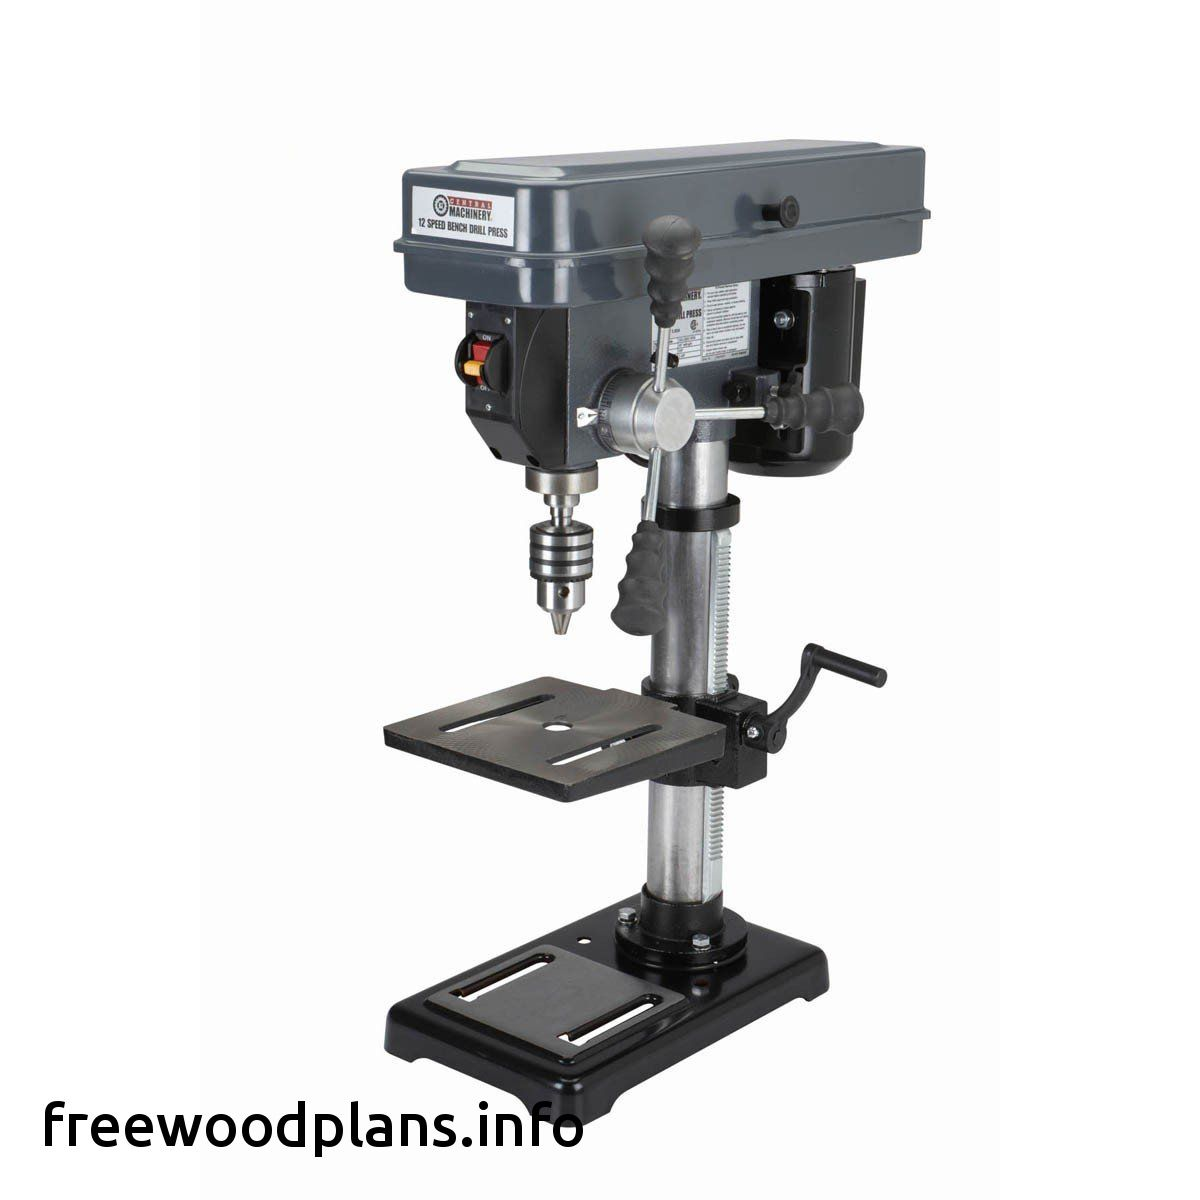 28 woodworking tools for sale on craigslist 2018 | free